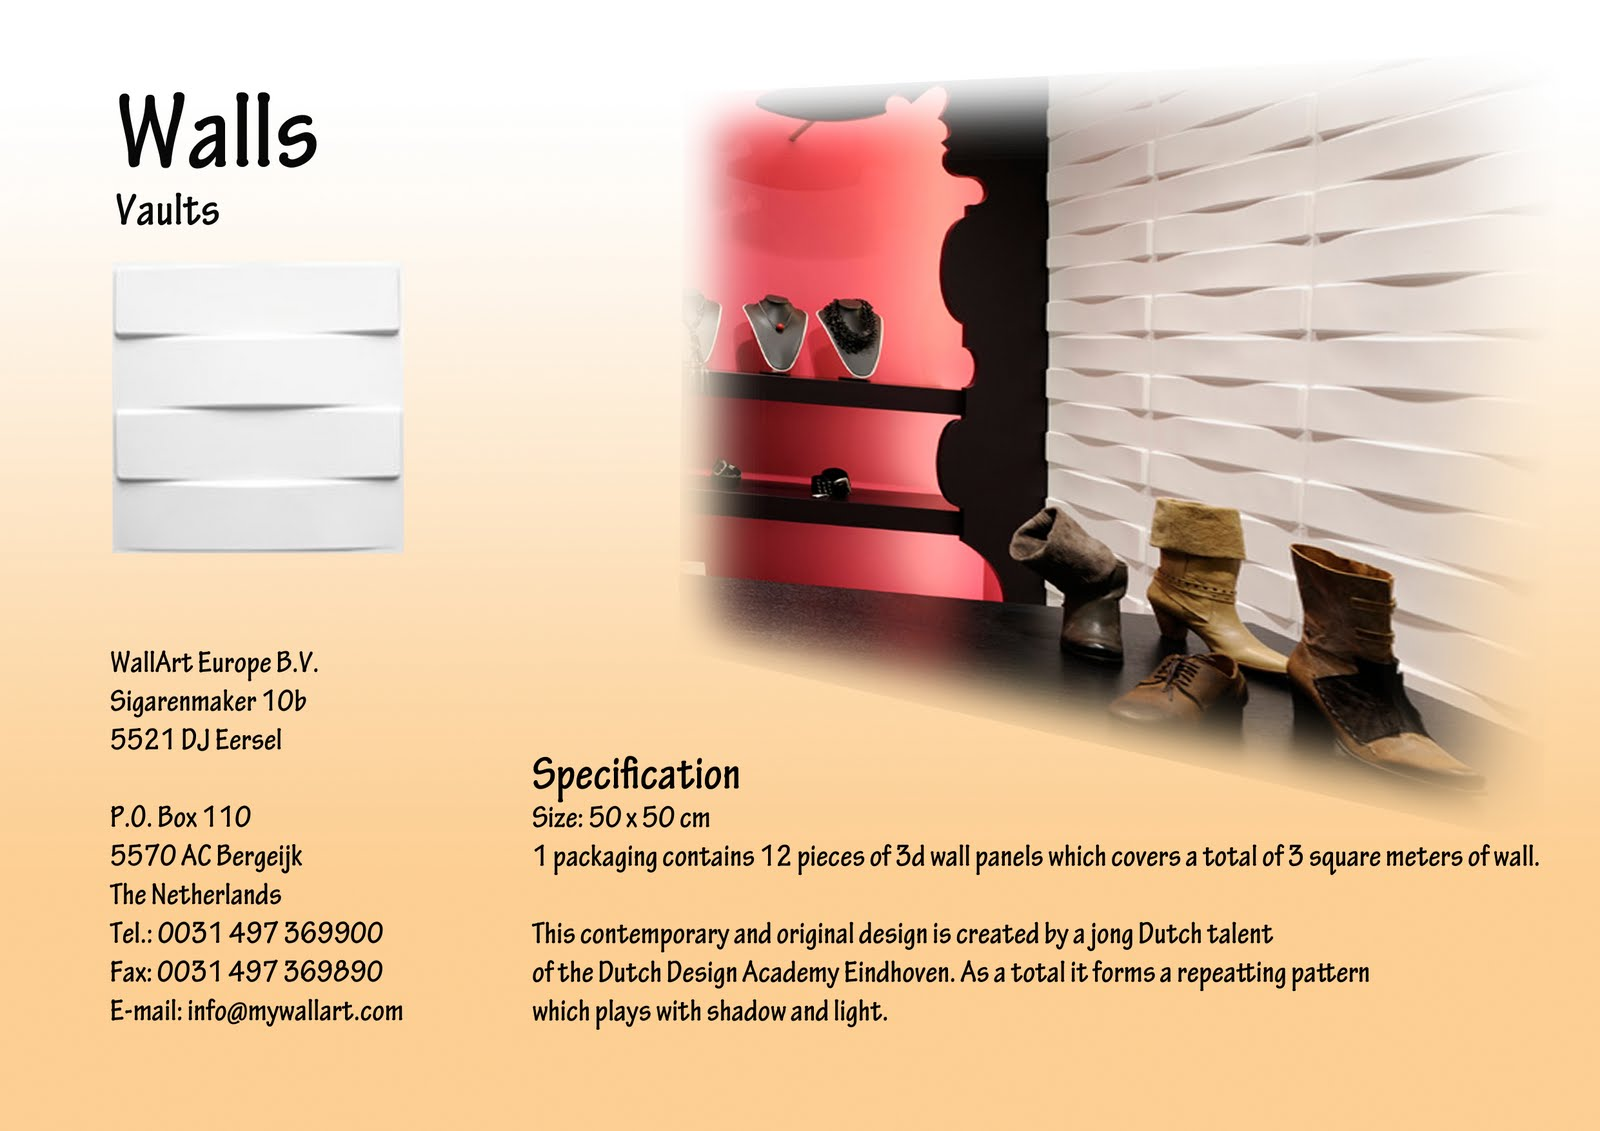 Interior Design by P.H.K: Wall Coverings